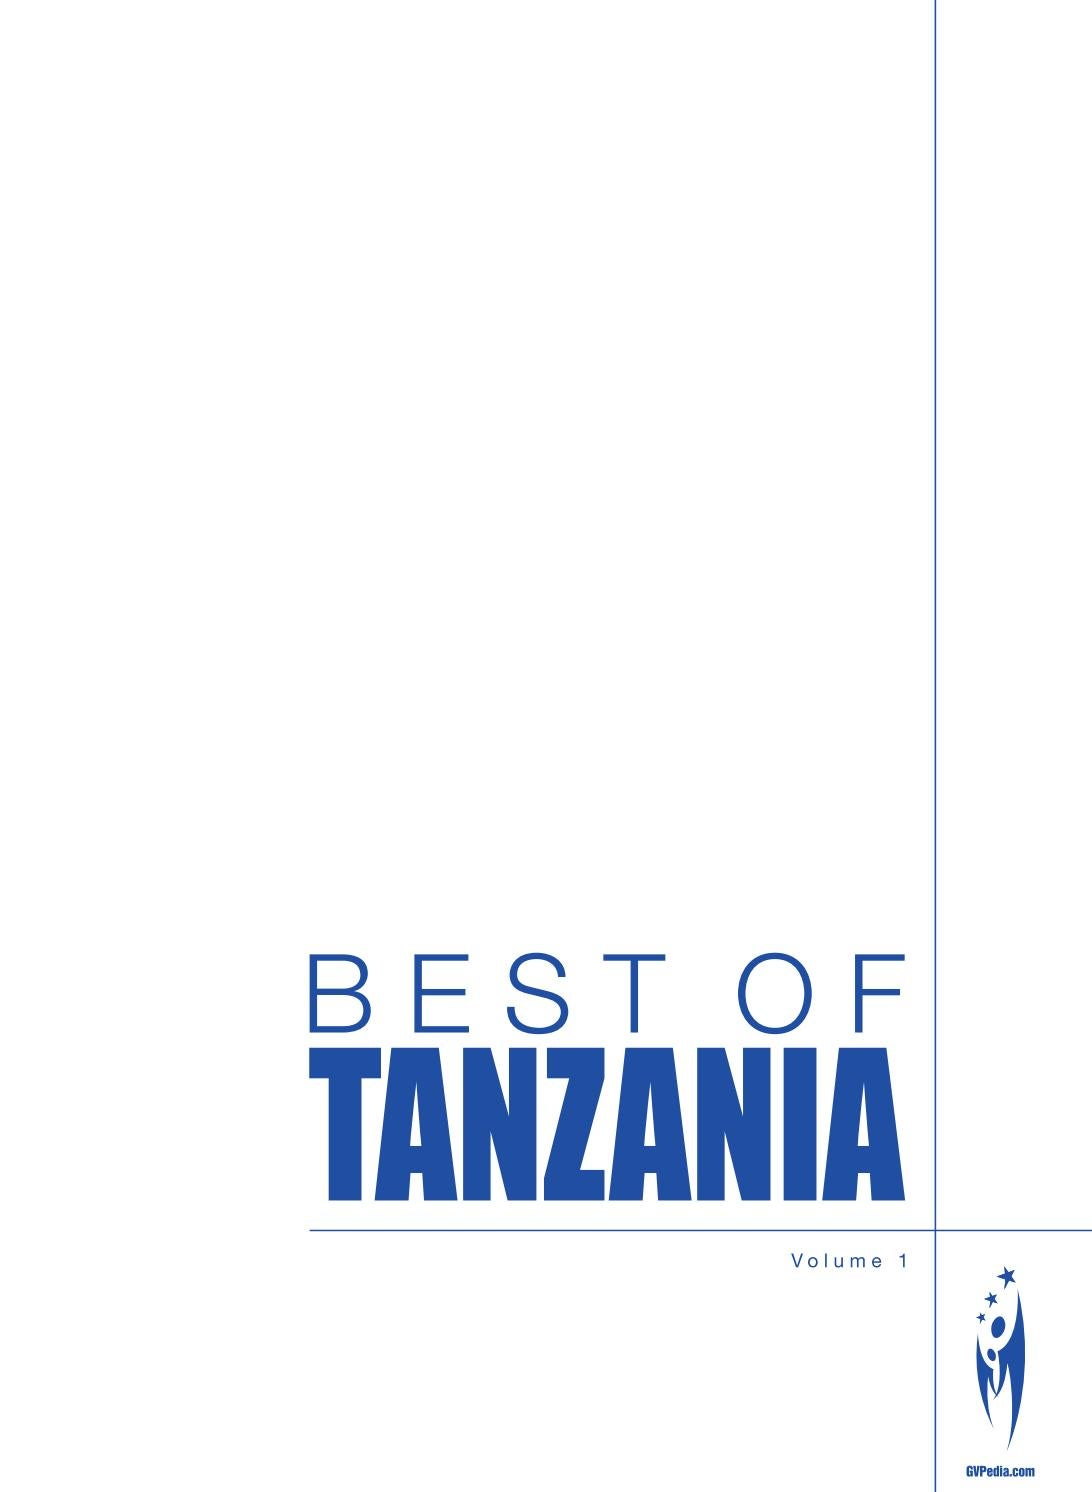 Wholesale Suppliers In Tanzania Best Of Tanzania Volume 1 By Sven Boermeester Issuu